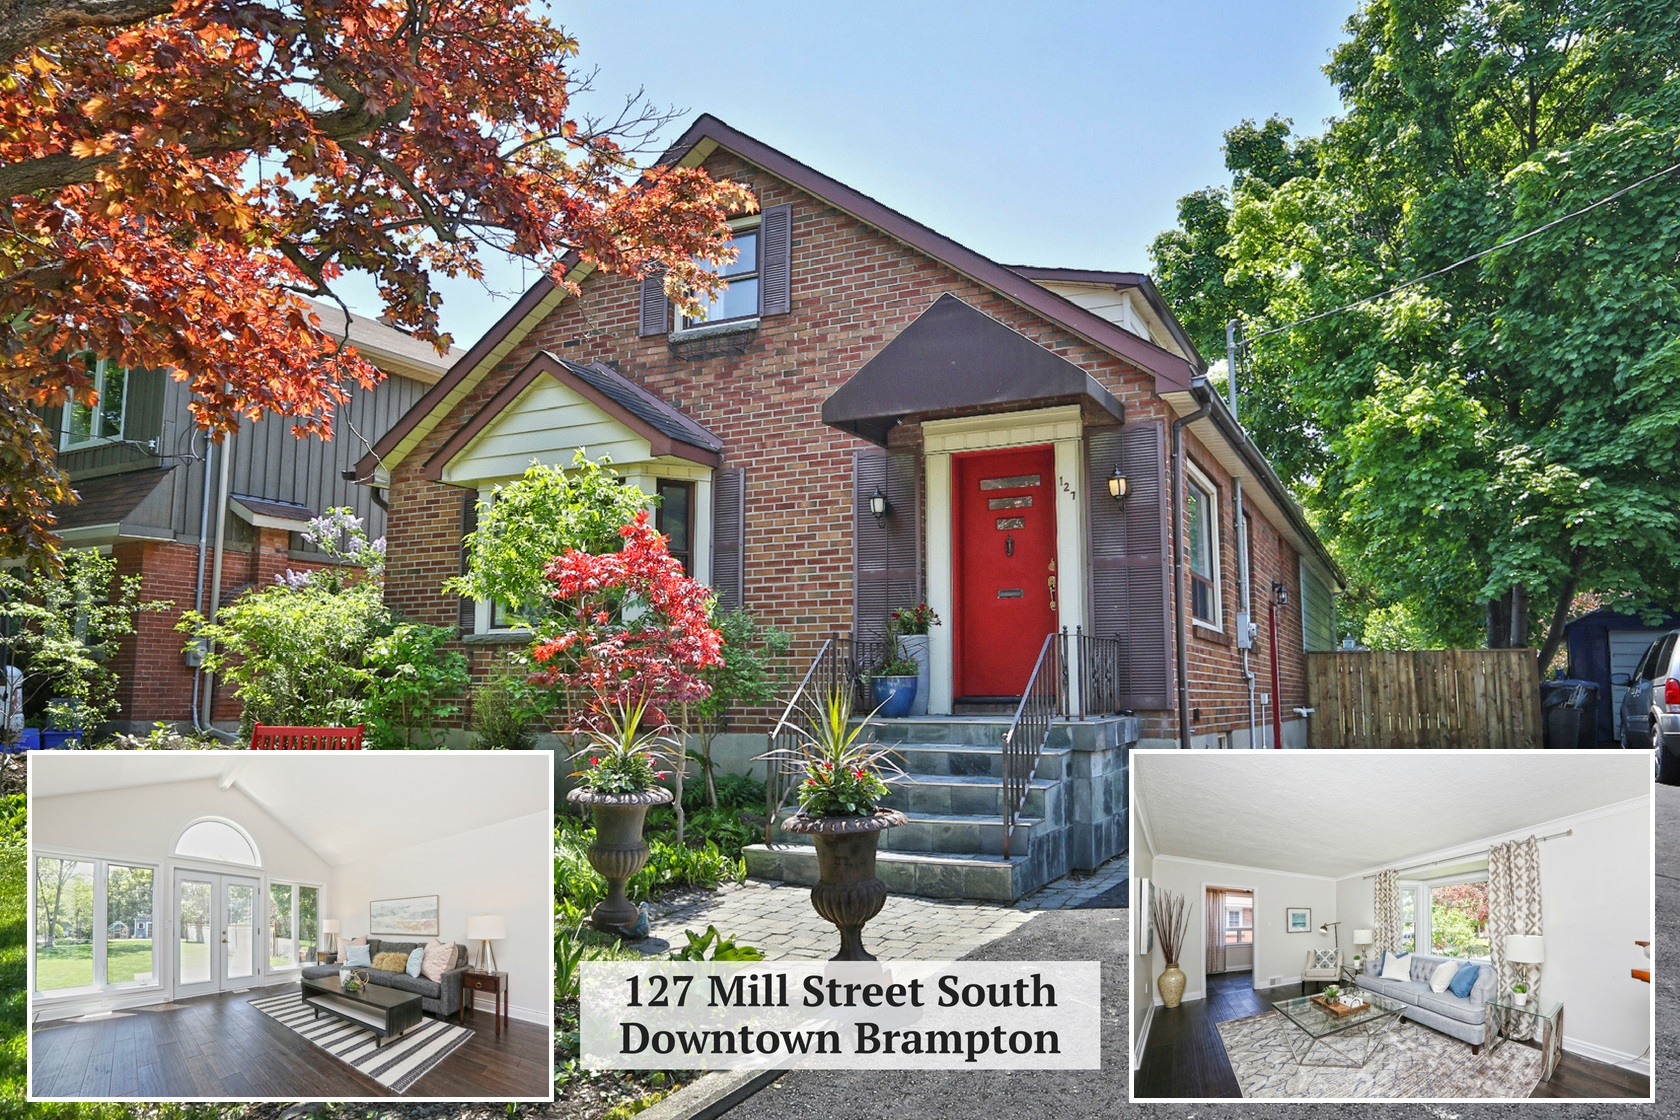 $799,000 • 127 Mill St S